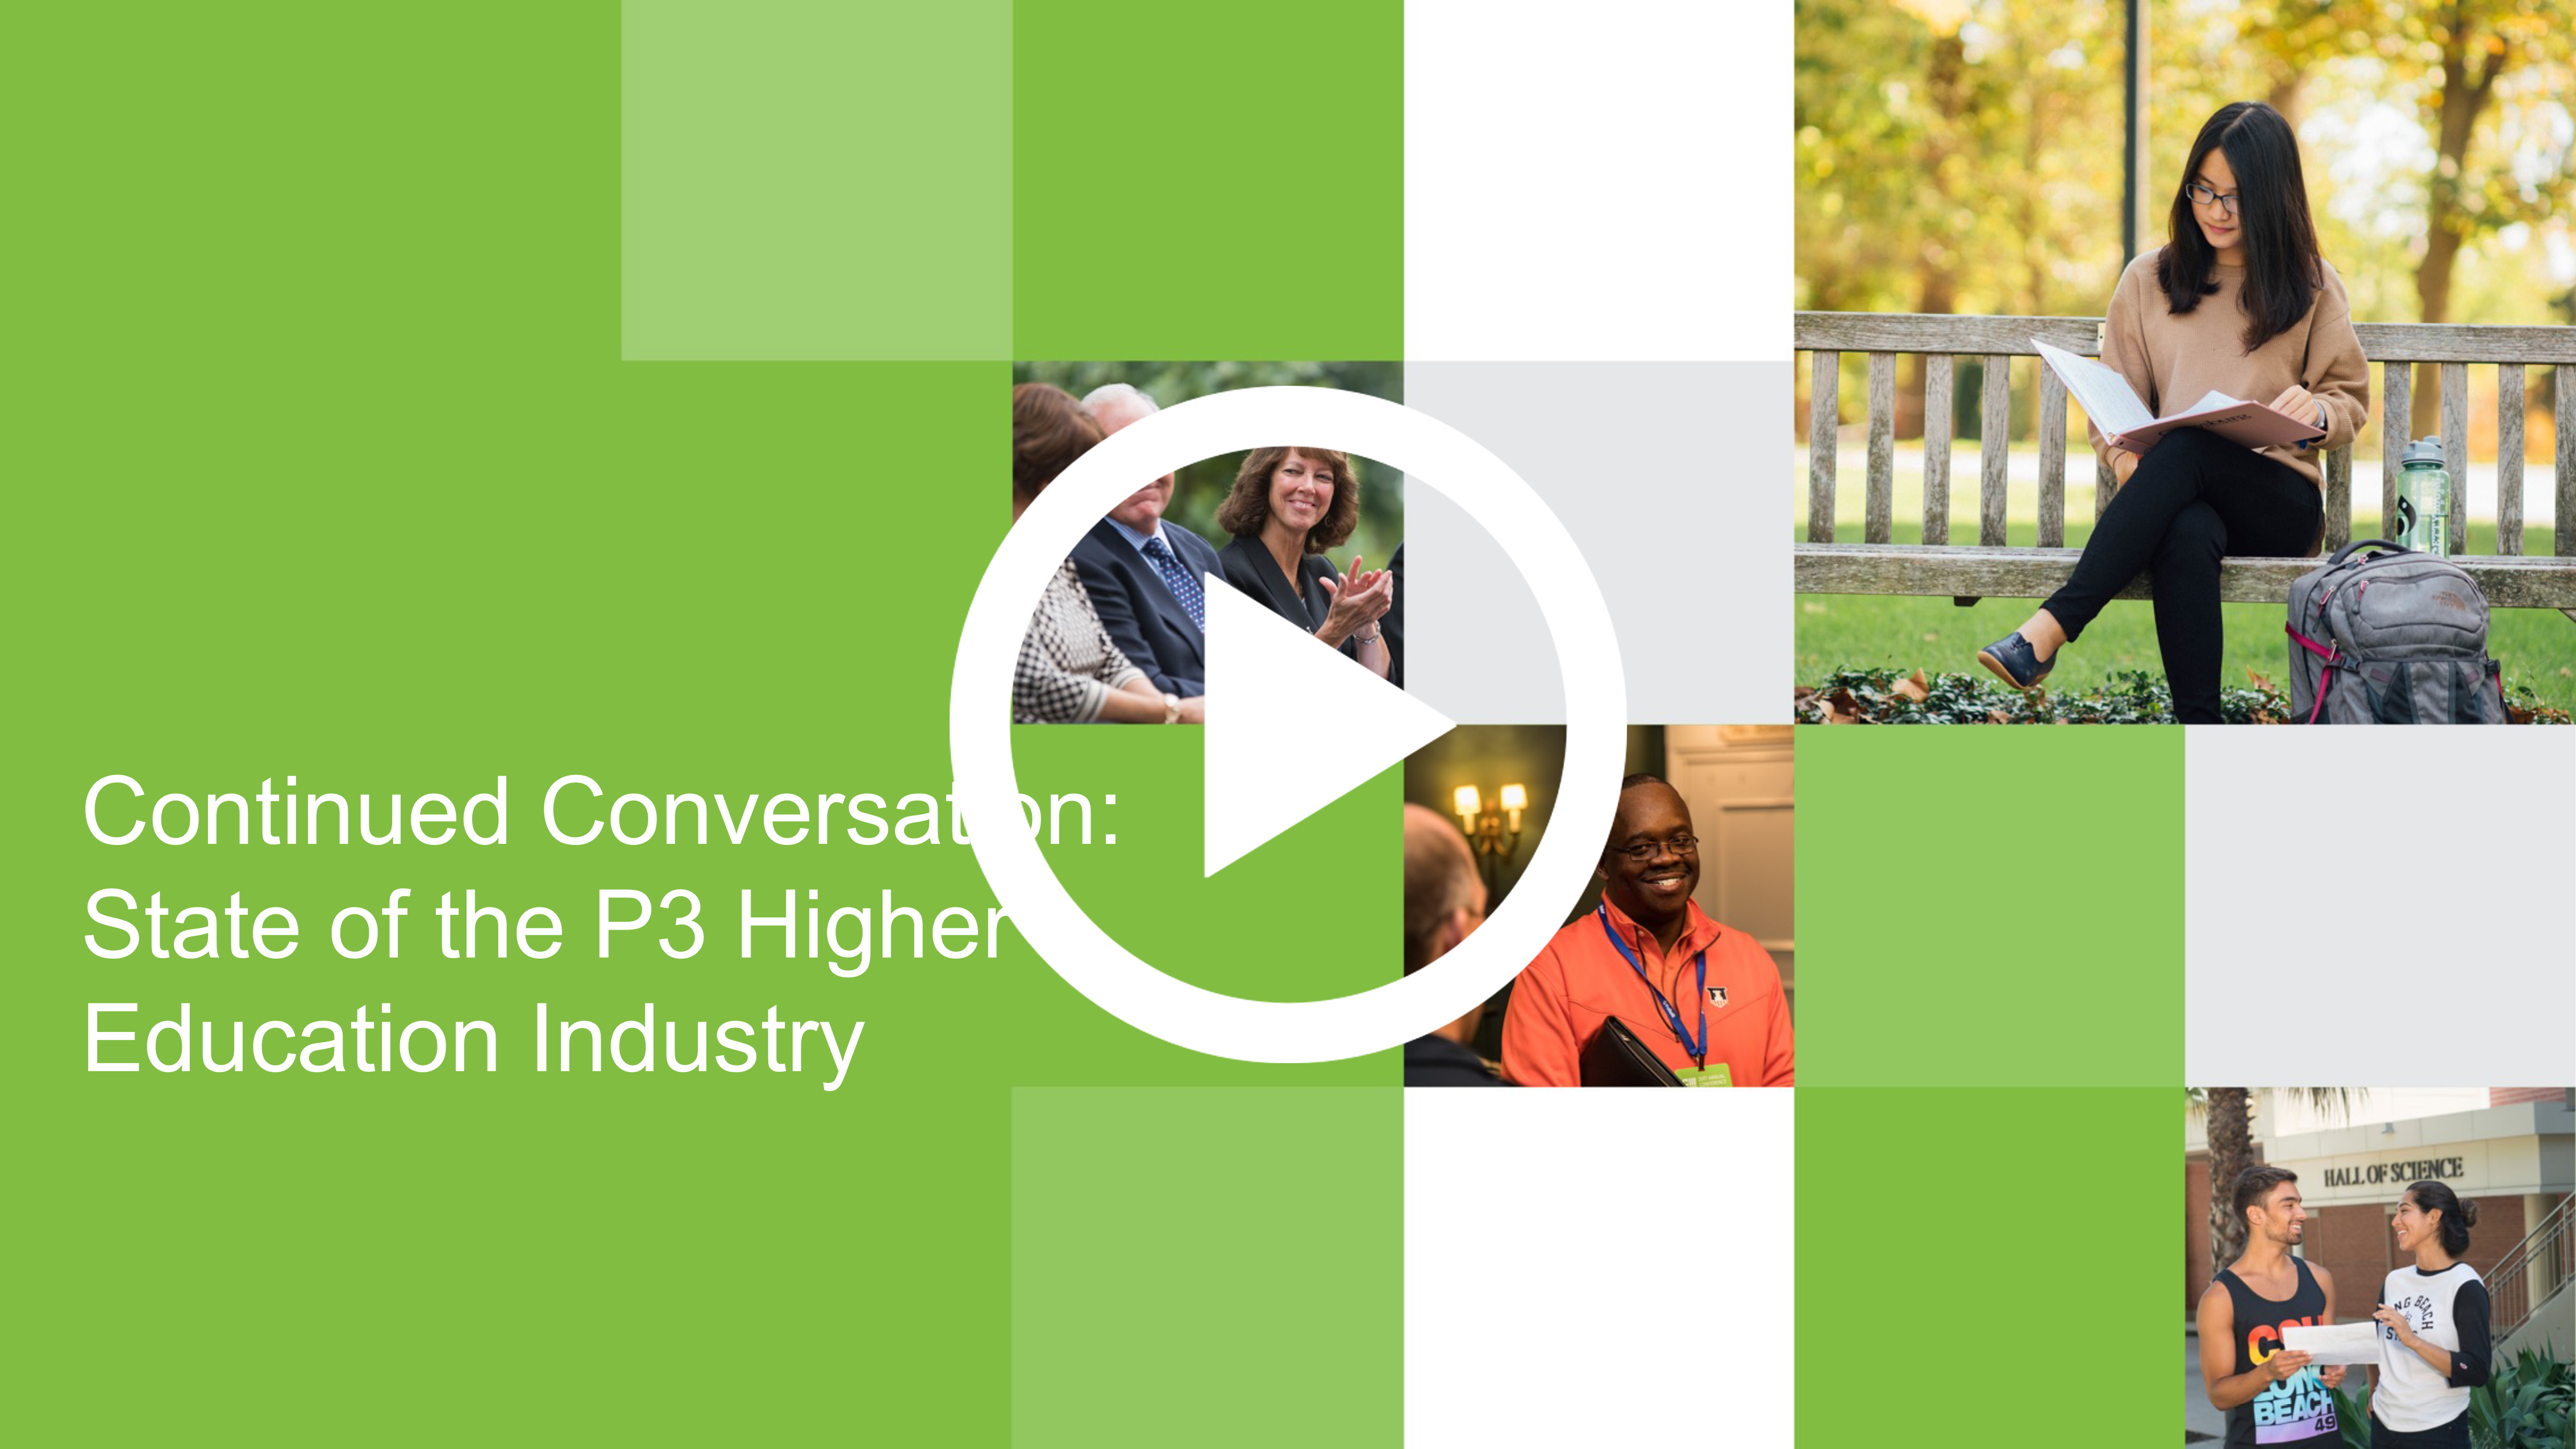 Hot Topic: State of the Higher Education P3 Industry (video)